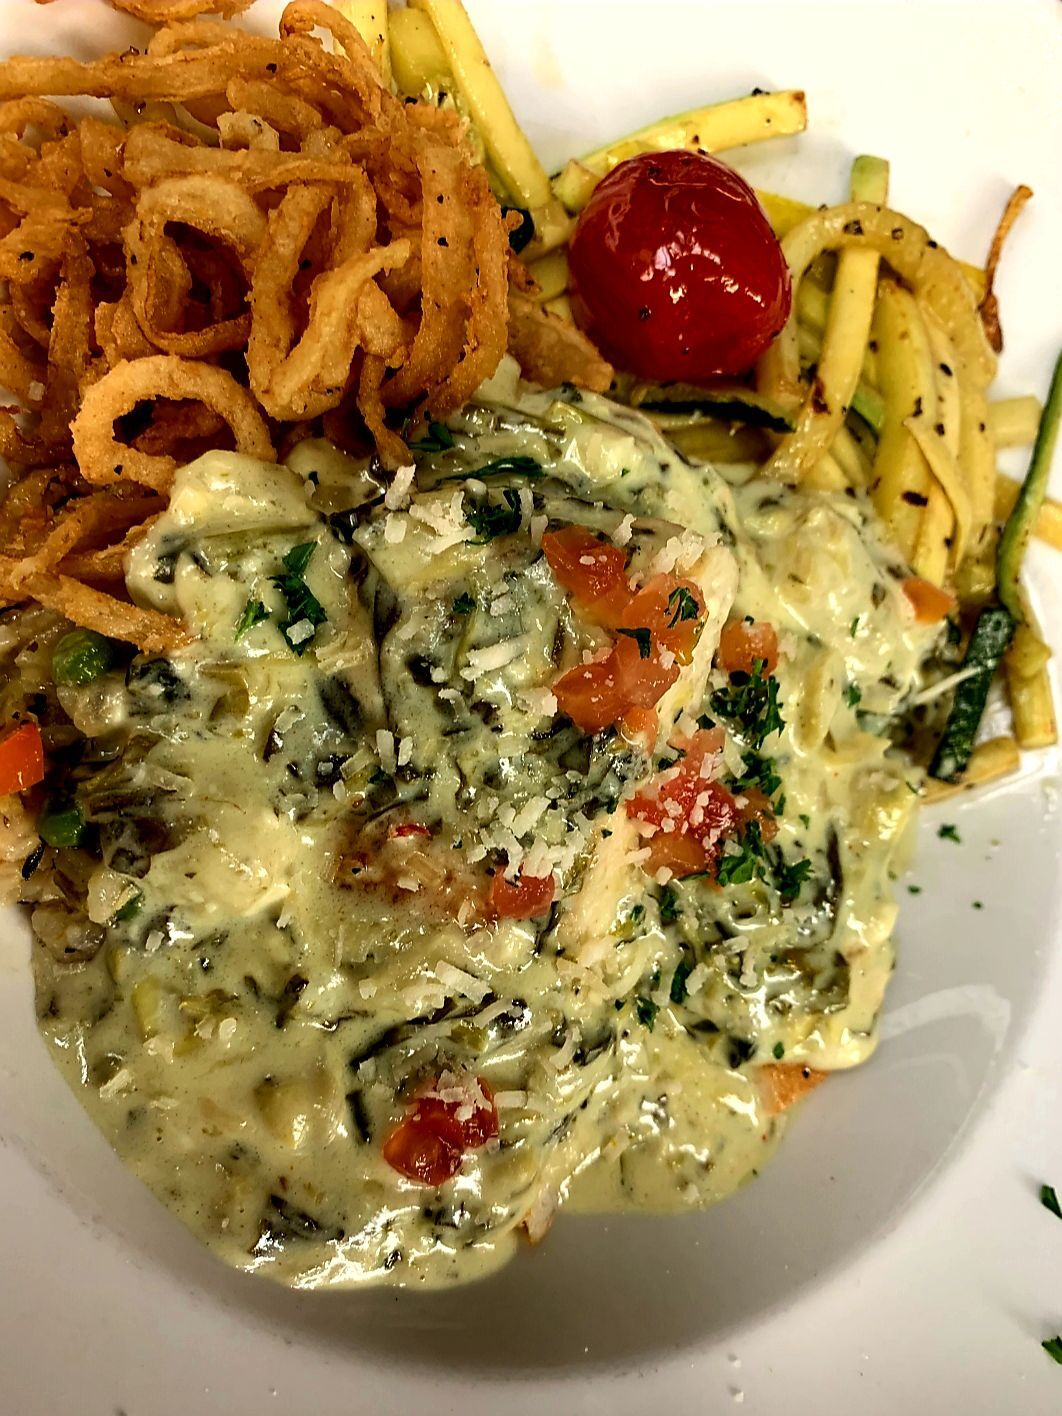 Spinach Artichoke Chicken, one of the Gateau To-Go offerings